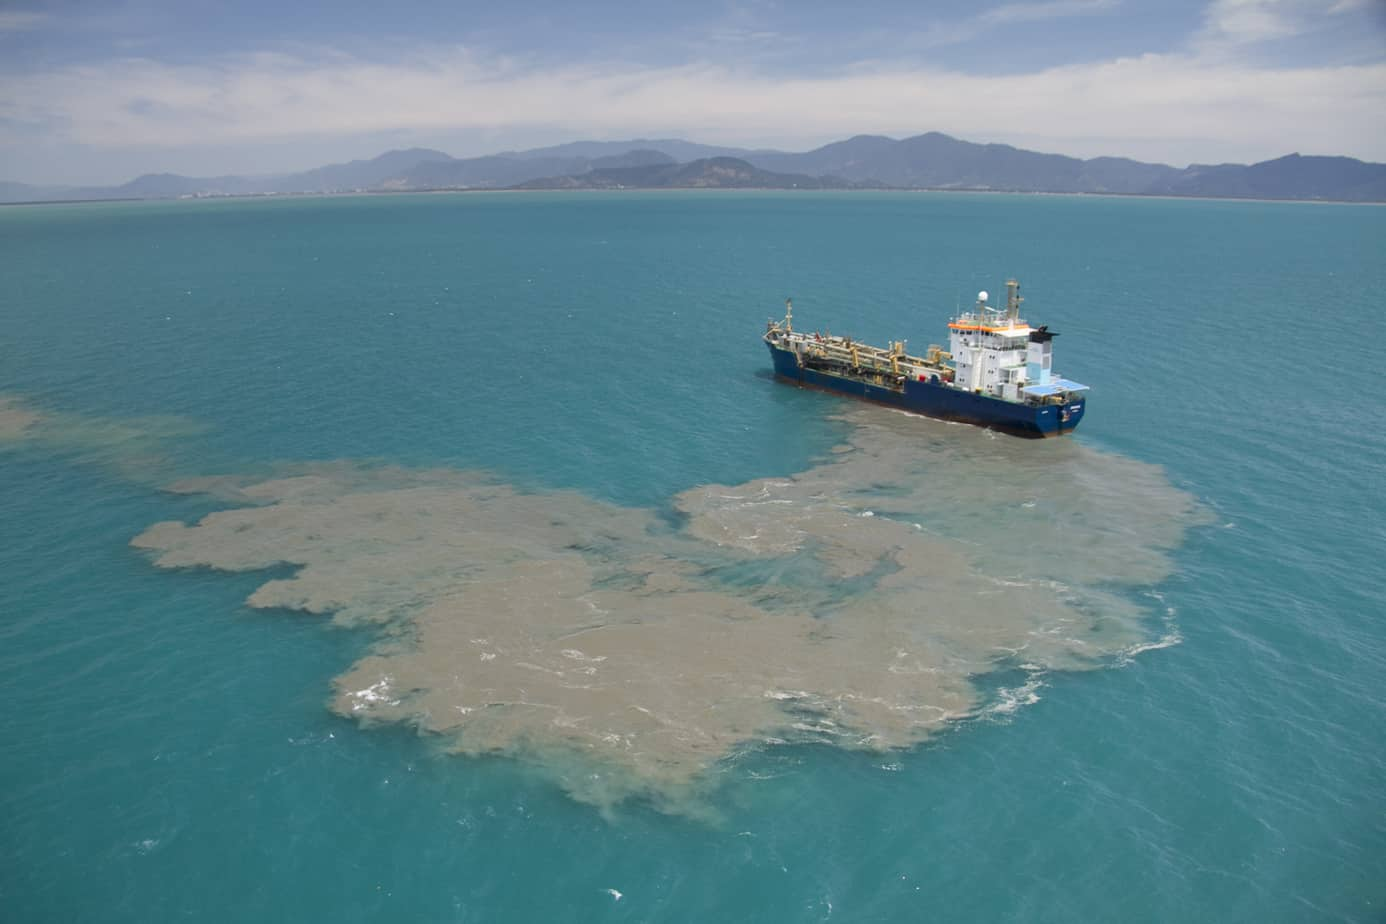 Lobbying to dredge Cairns Port misleading and misguided